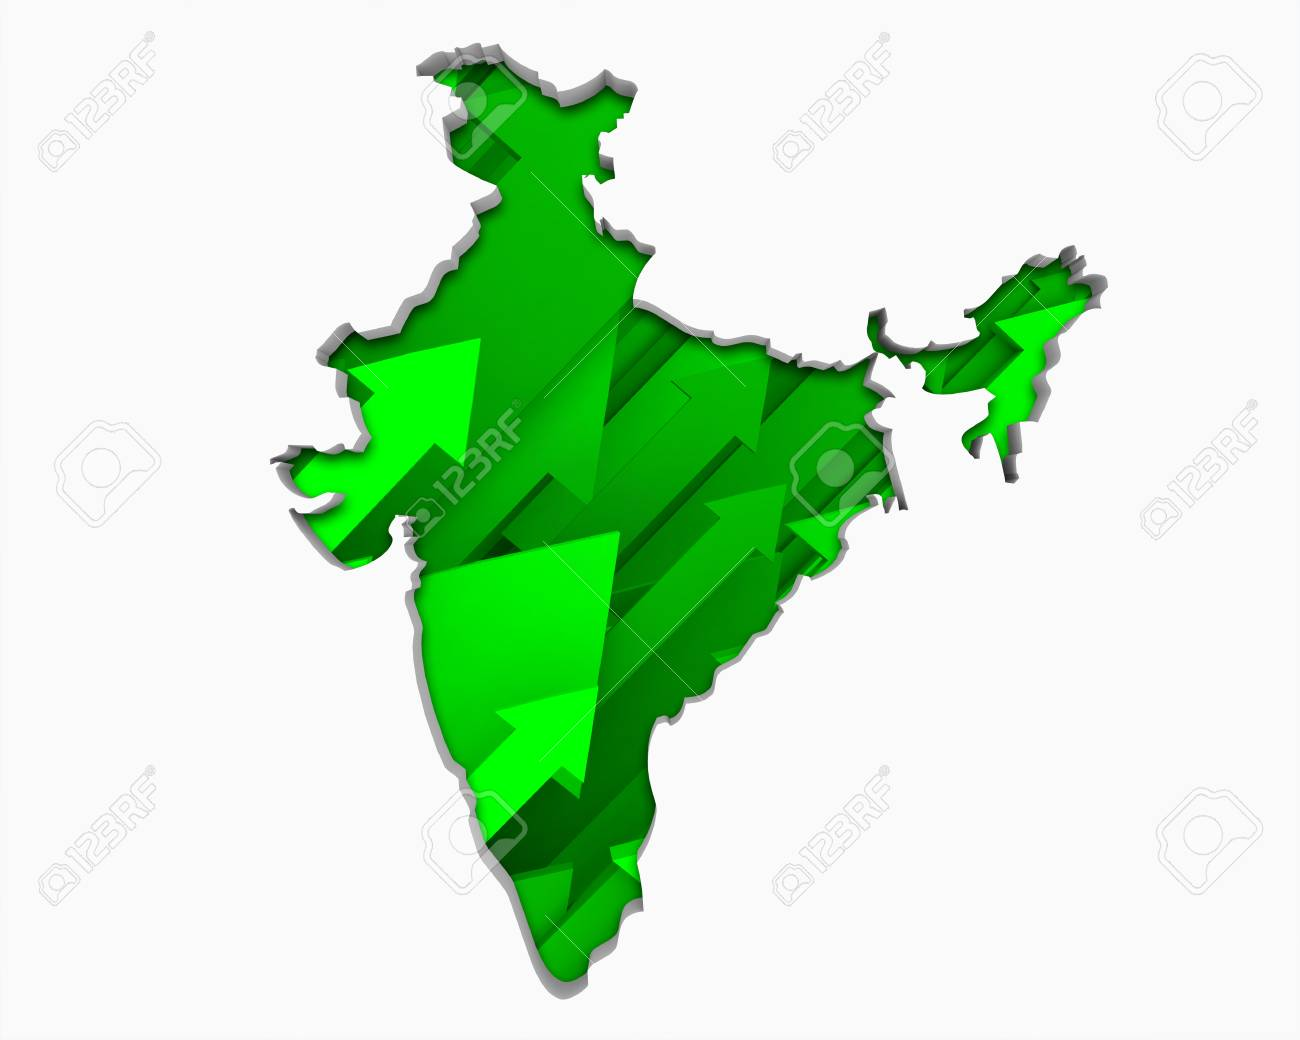 Map Of Asia India.Stock Illustration